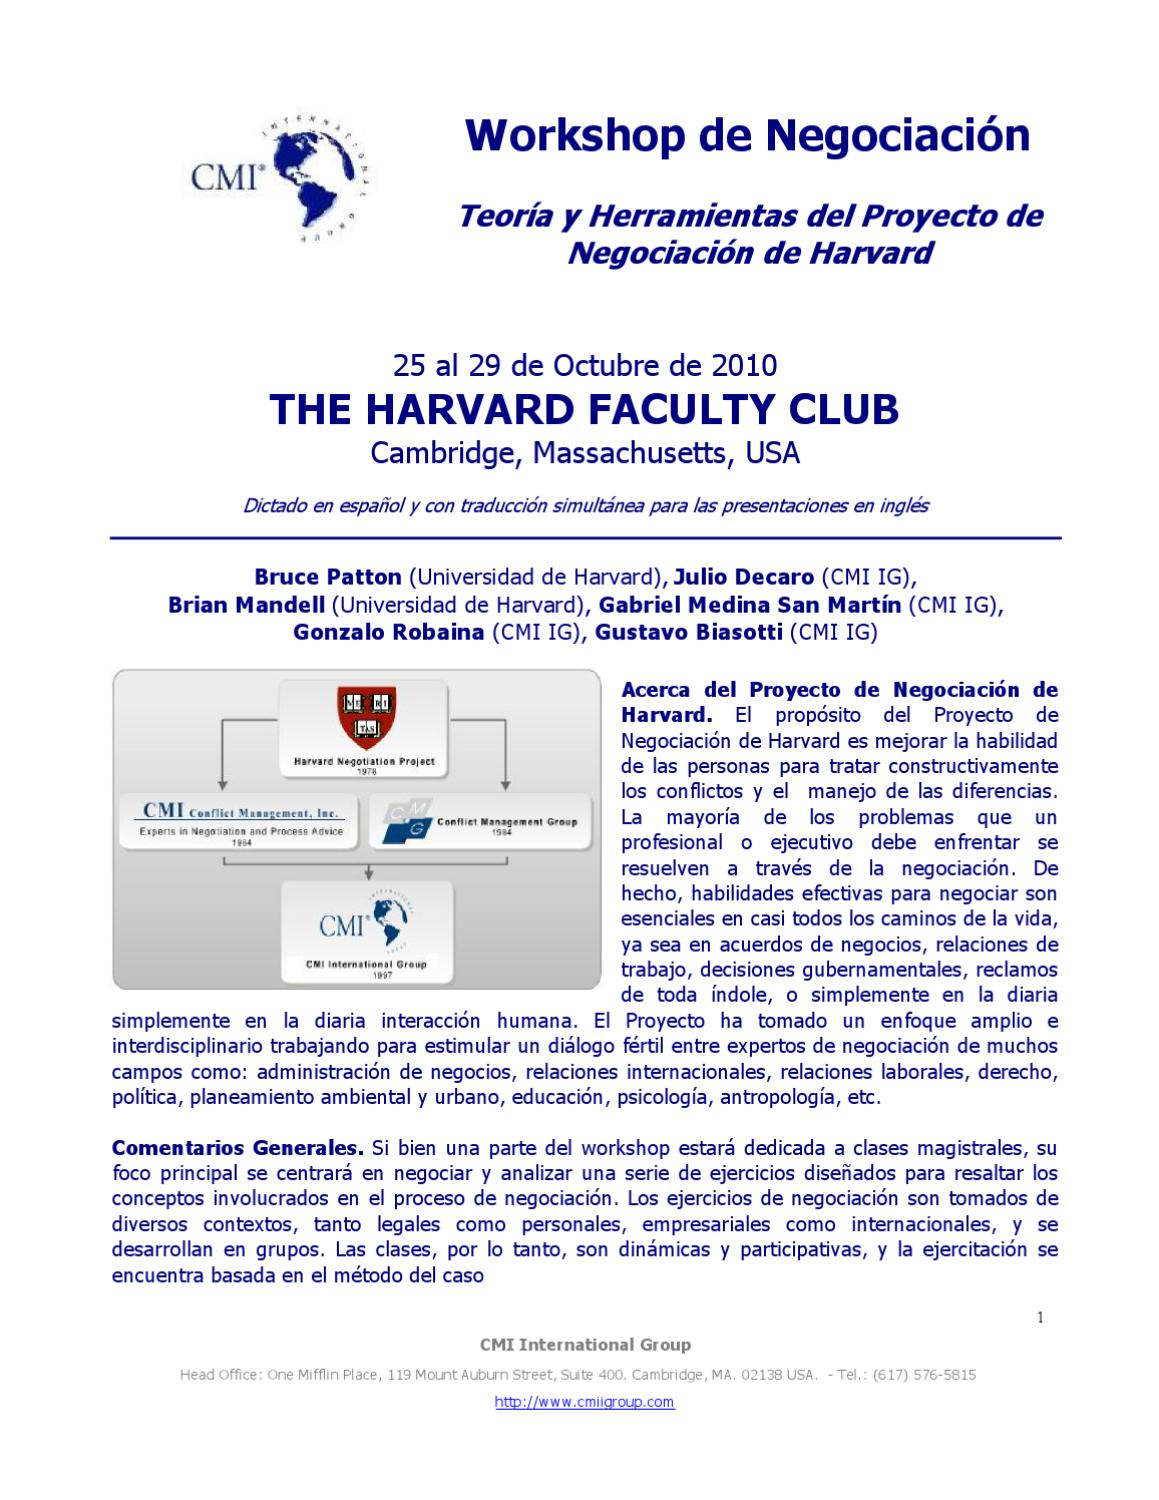 Workshop de Negociación en Harvard by Álvaro Sabini - issuu